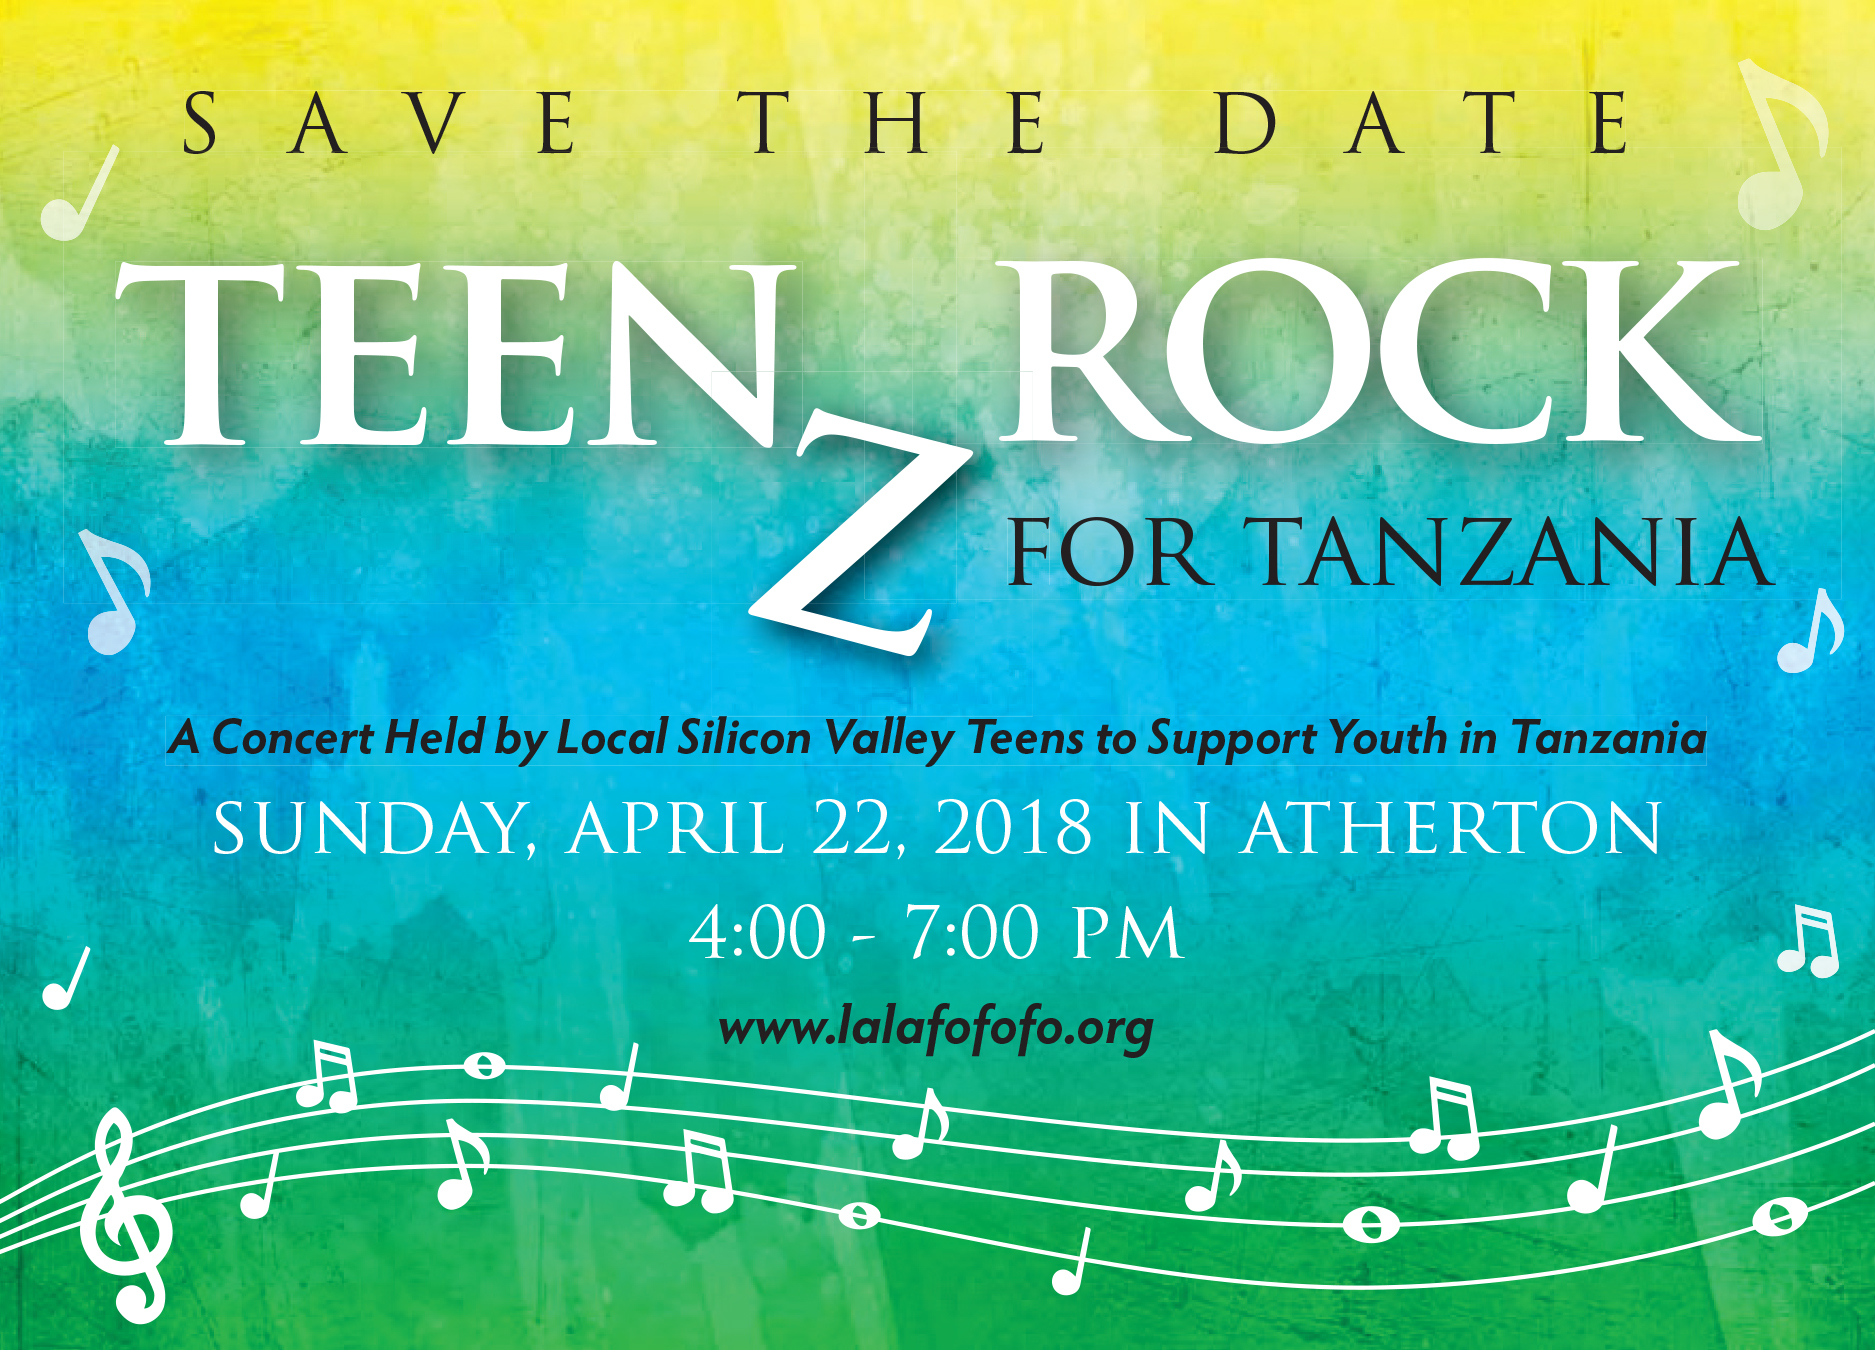 TeenzRock Save the Date_042218_V10.jpg